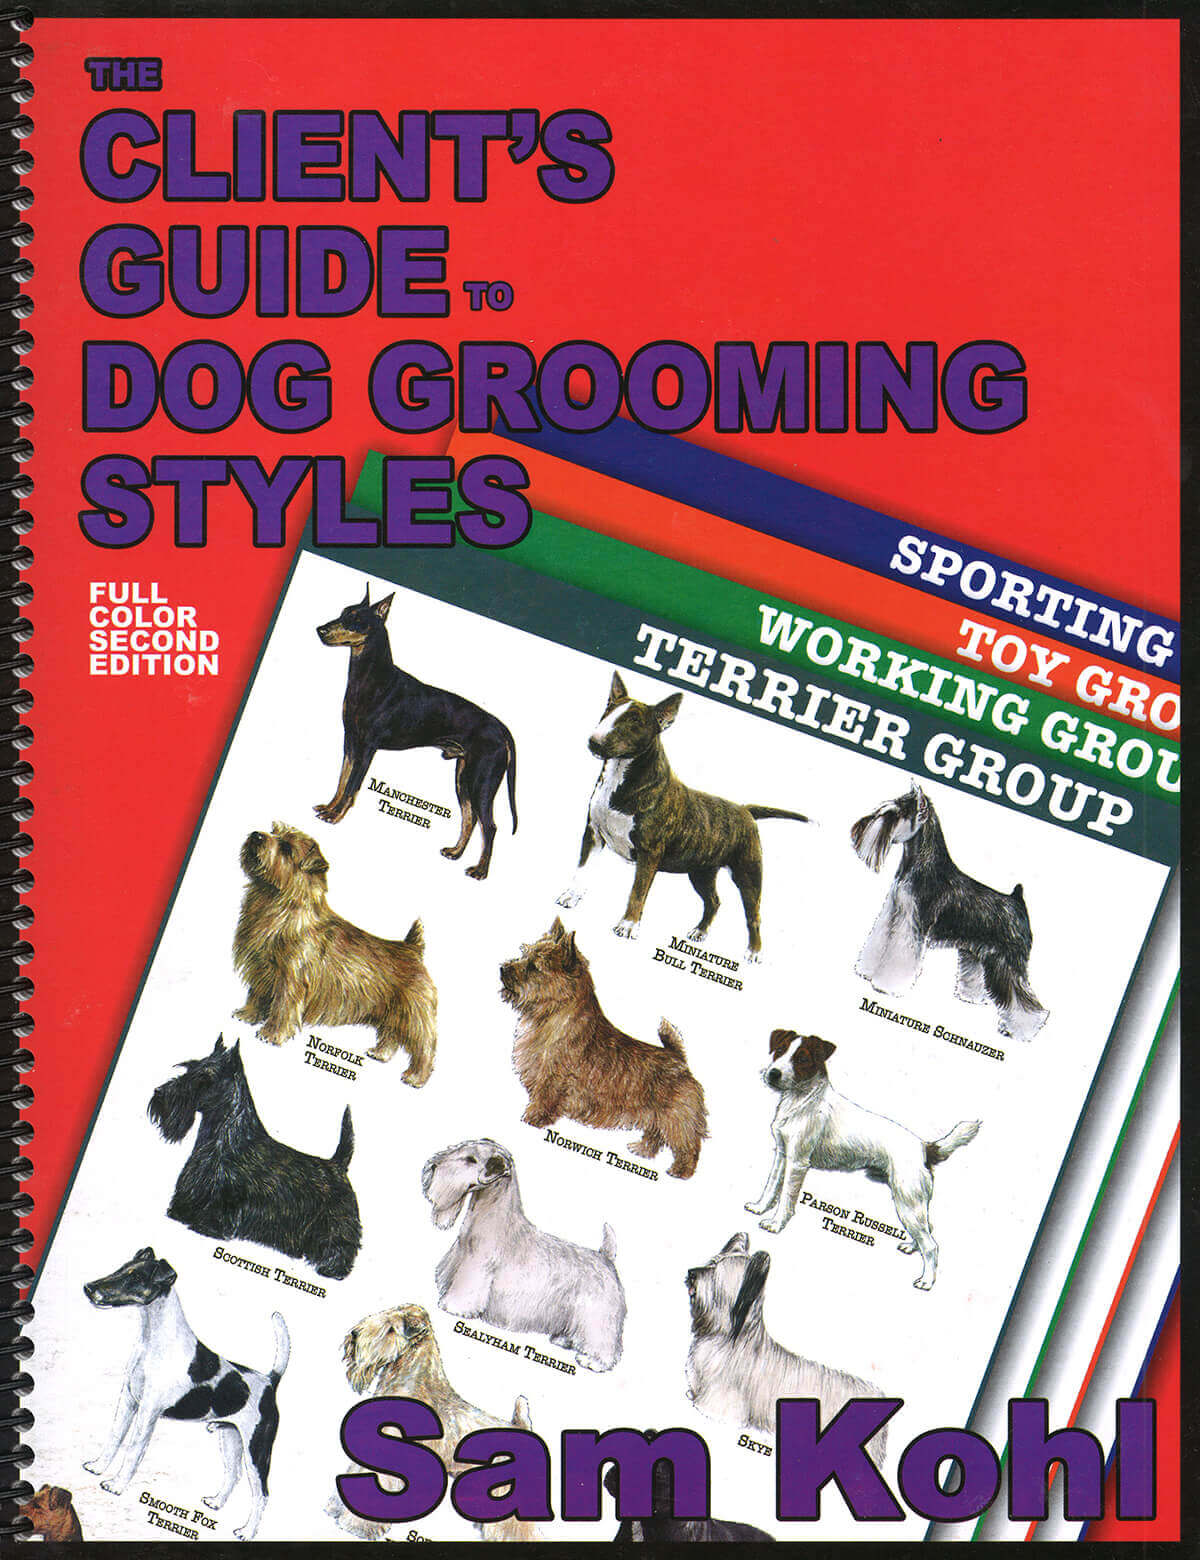 The Dog Grooming Guide Cards